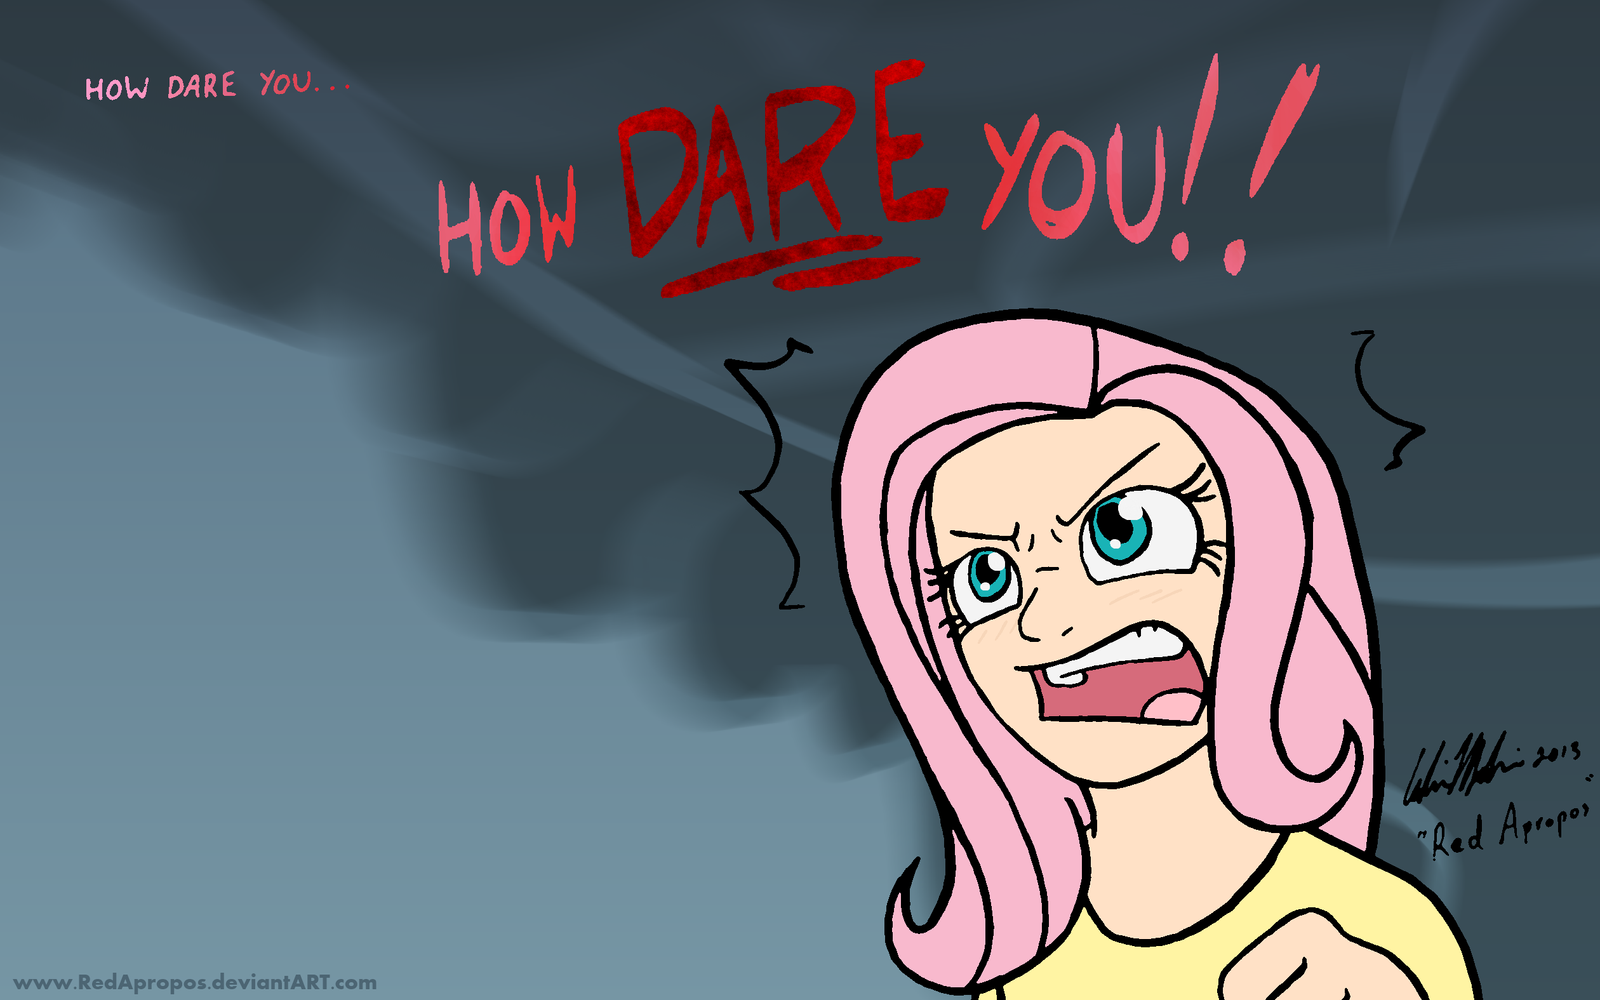 How dare you... by RedApropos